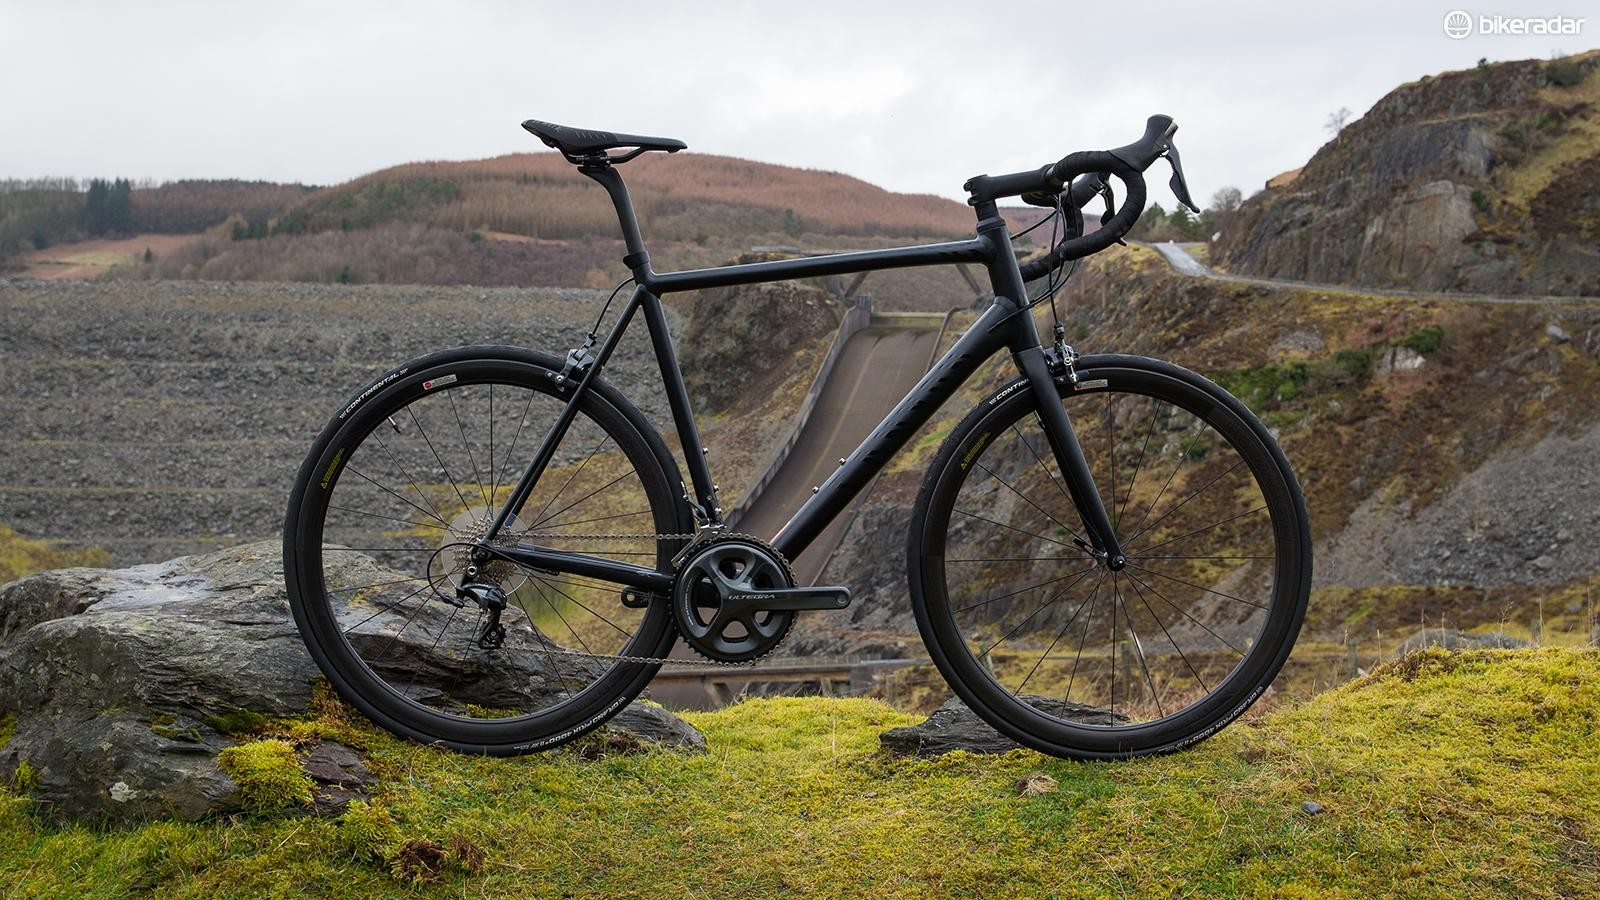 The Canyon Ultimate AL SLX 9.0 Aero